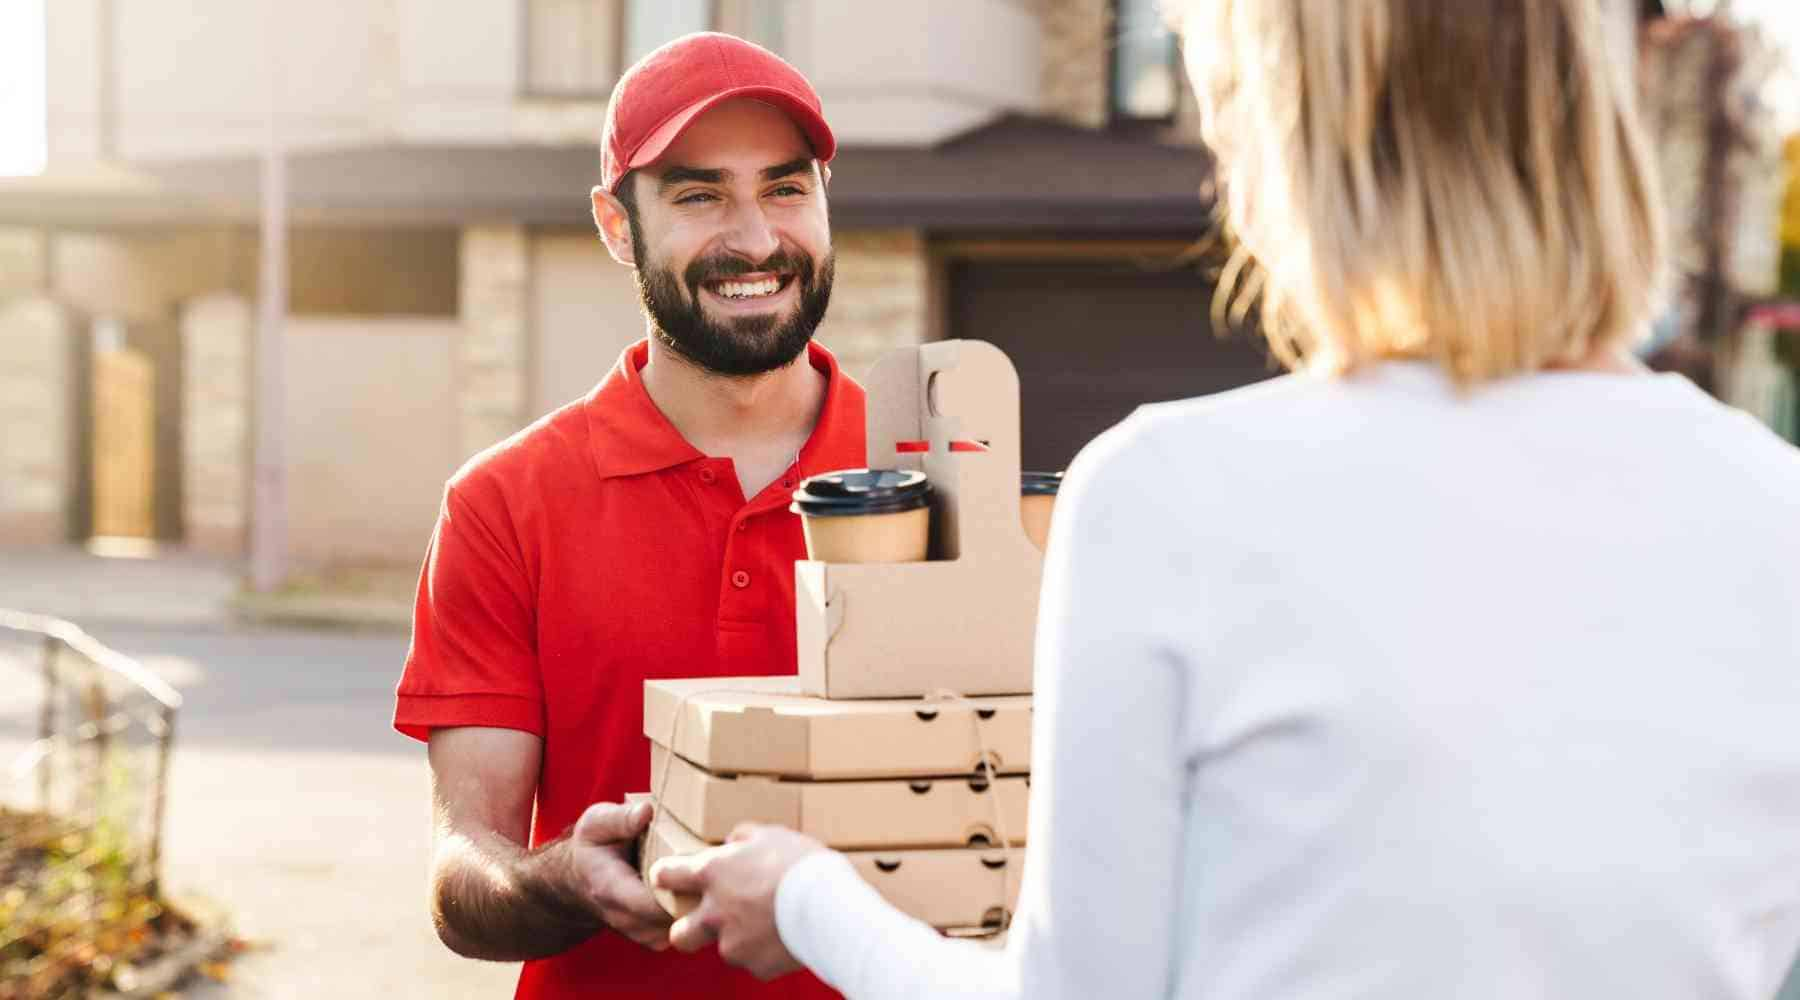 Ways to Make $100 a Day - Food Delivery